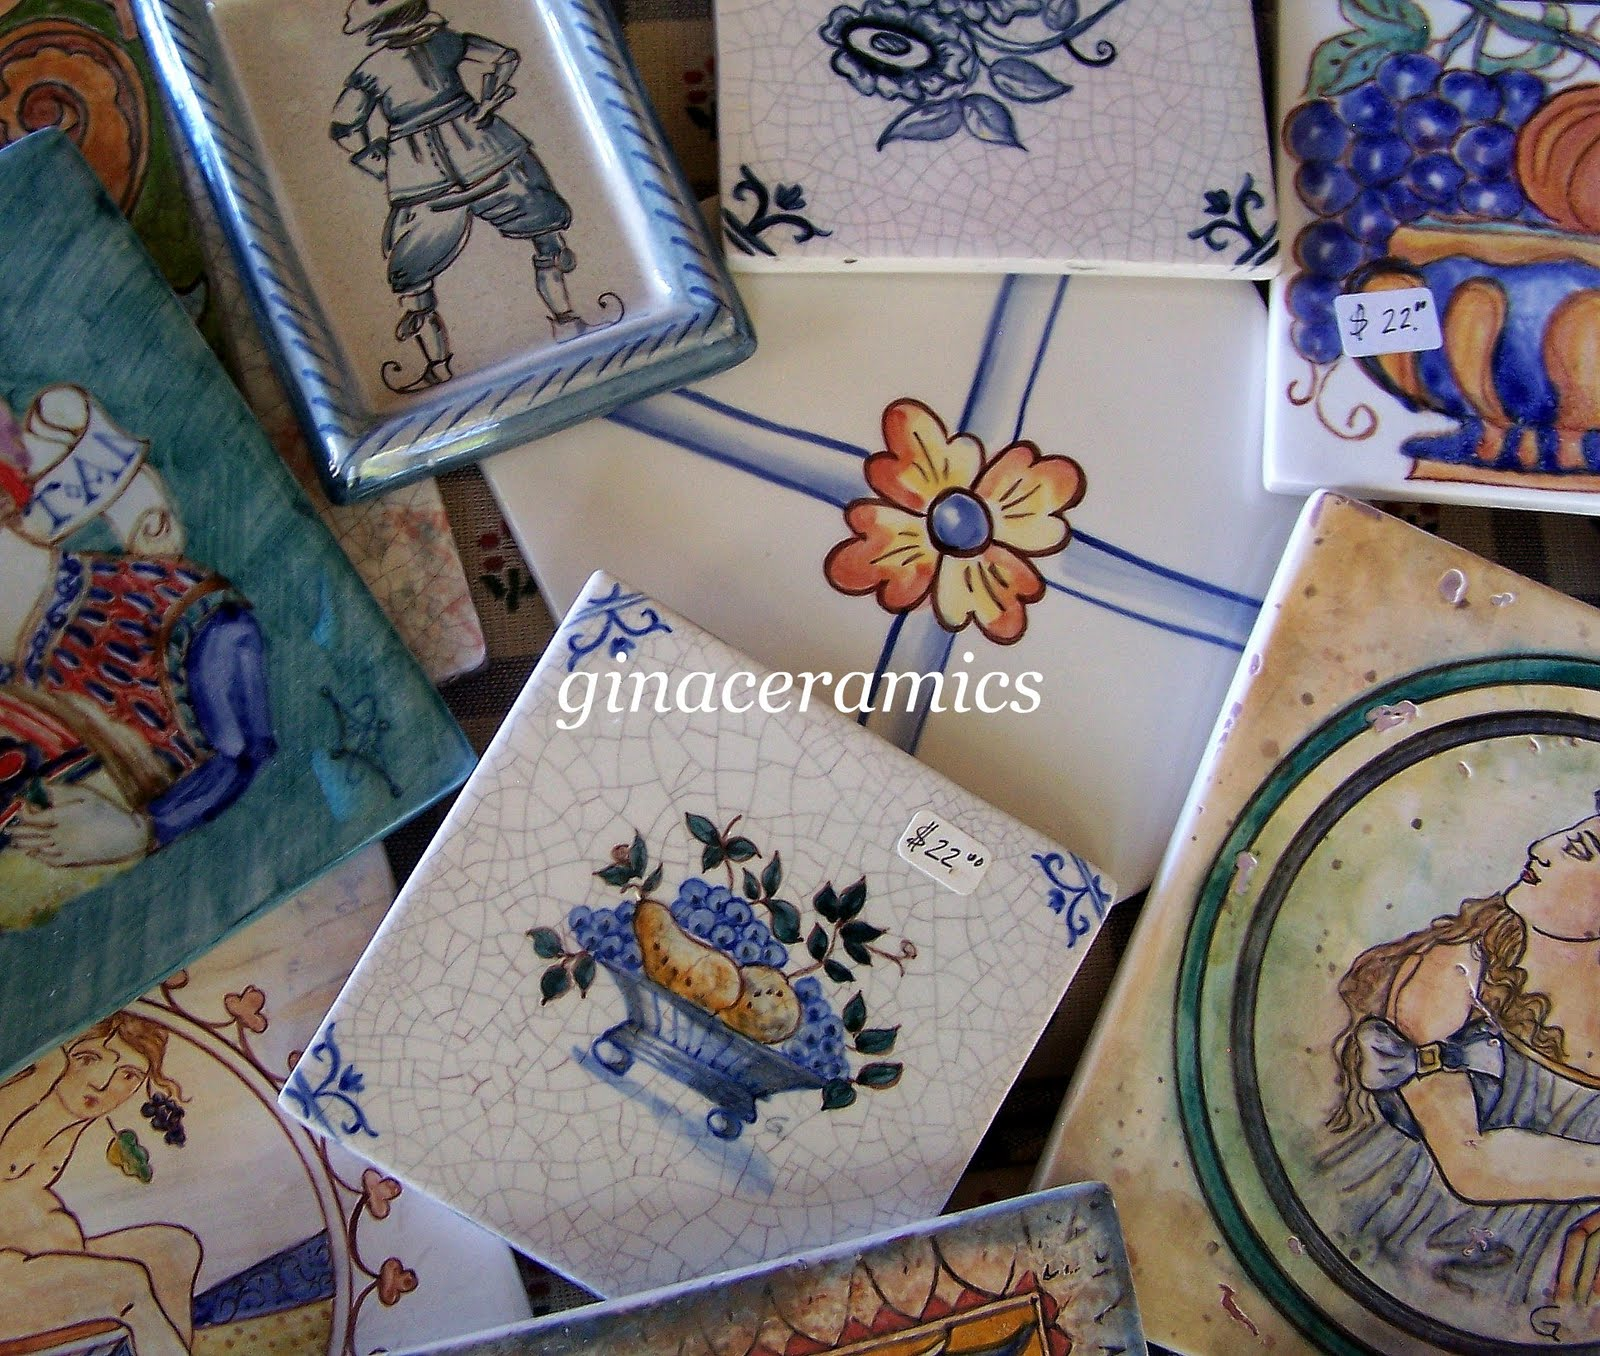 Art And Alfalfa Hand Painted Ceramic Tiles Are Back. Moen Kitchen Sink. Oil Rubbed Bronze Kitchen Sinks. Kitchen Barn Sink. Sink Ikea Kitchen. Kitchen Sink Strainer Stopper. Oakley Kitchen Sink Stealth Black. Kitchen Sink Drain Basket. Replace Kitchen Sink